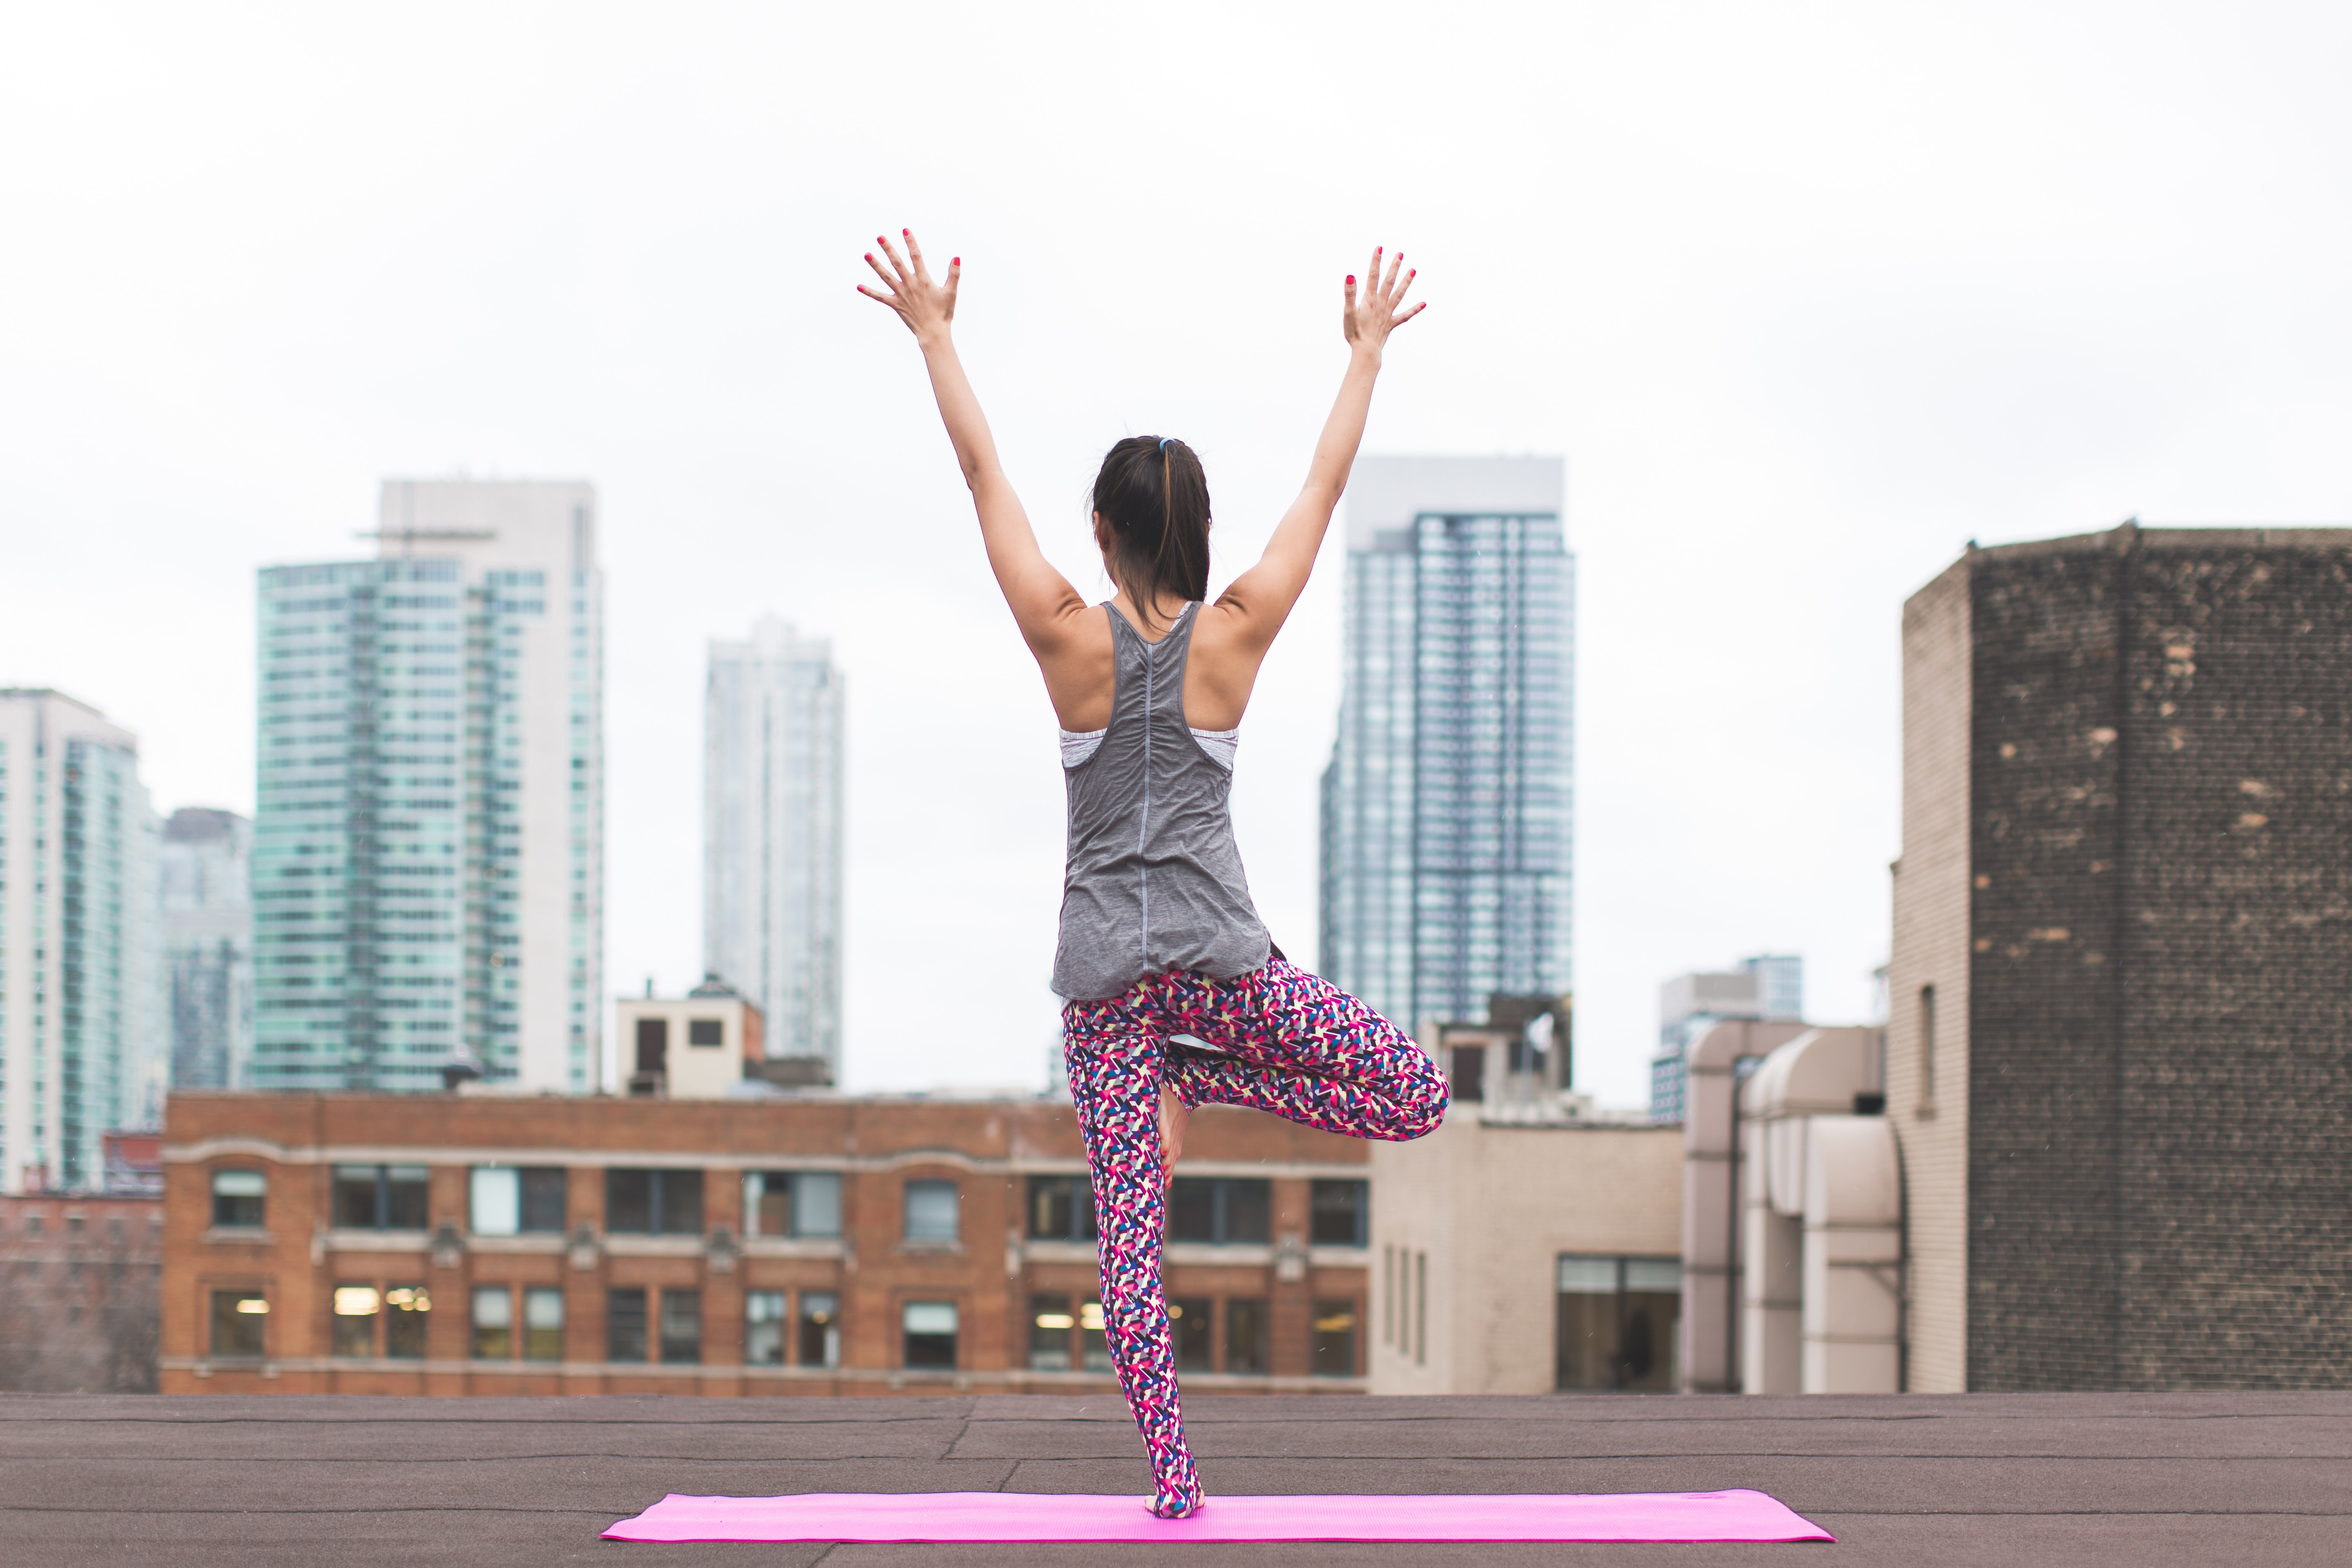 Back view of a woman standing on one leg on a yoga mat in a city